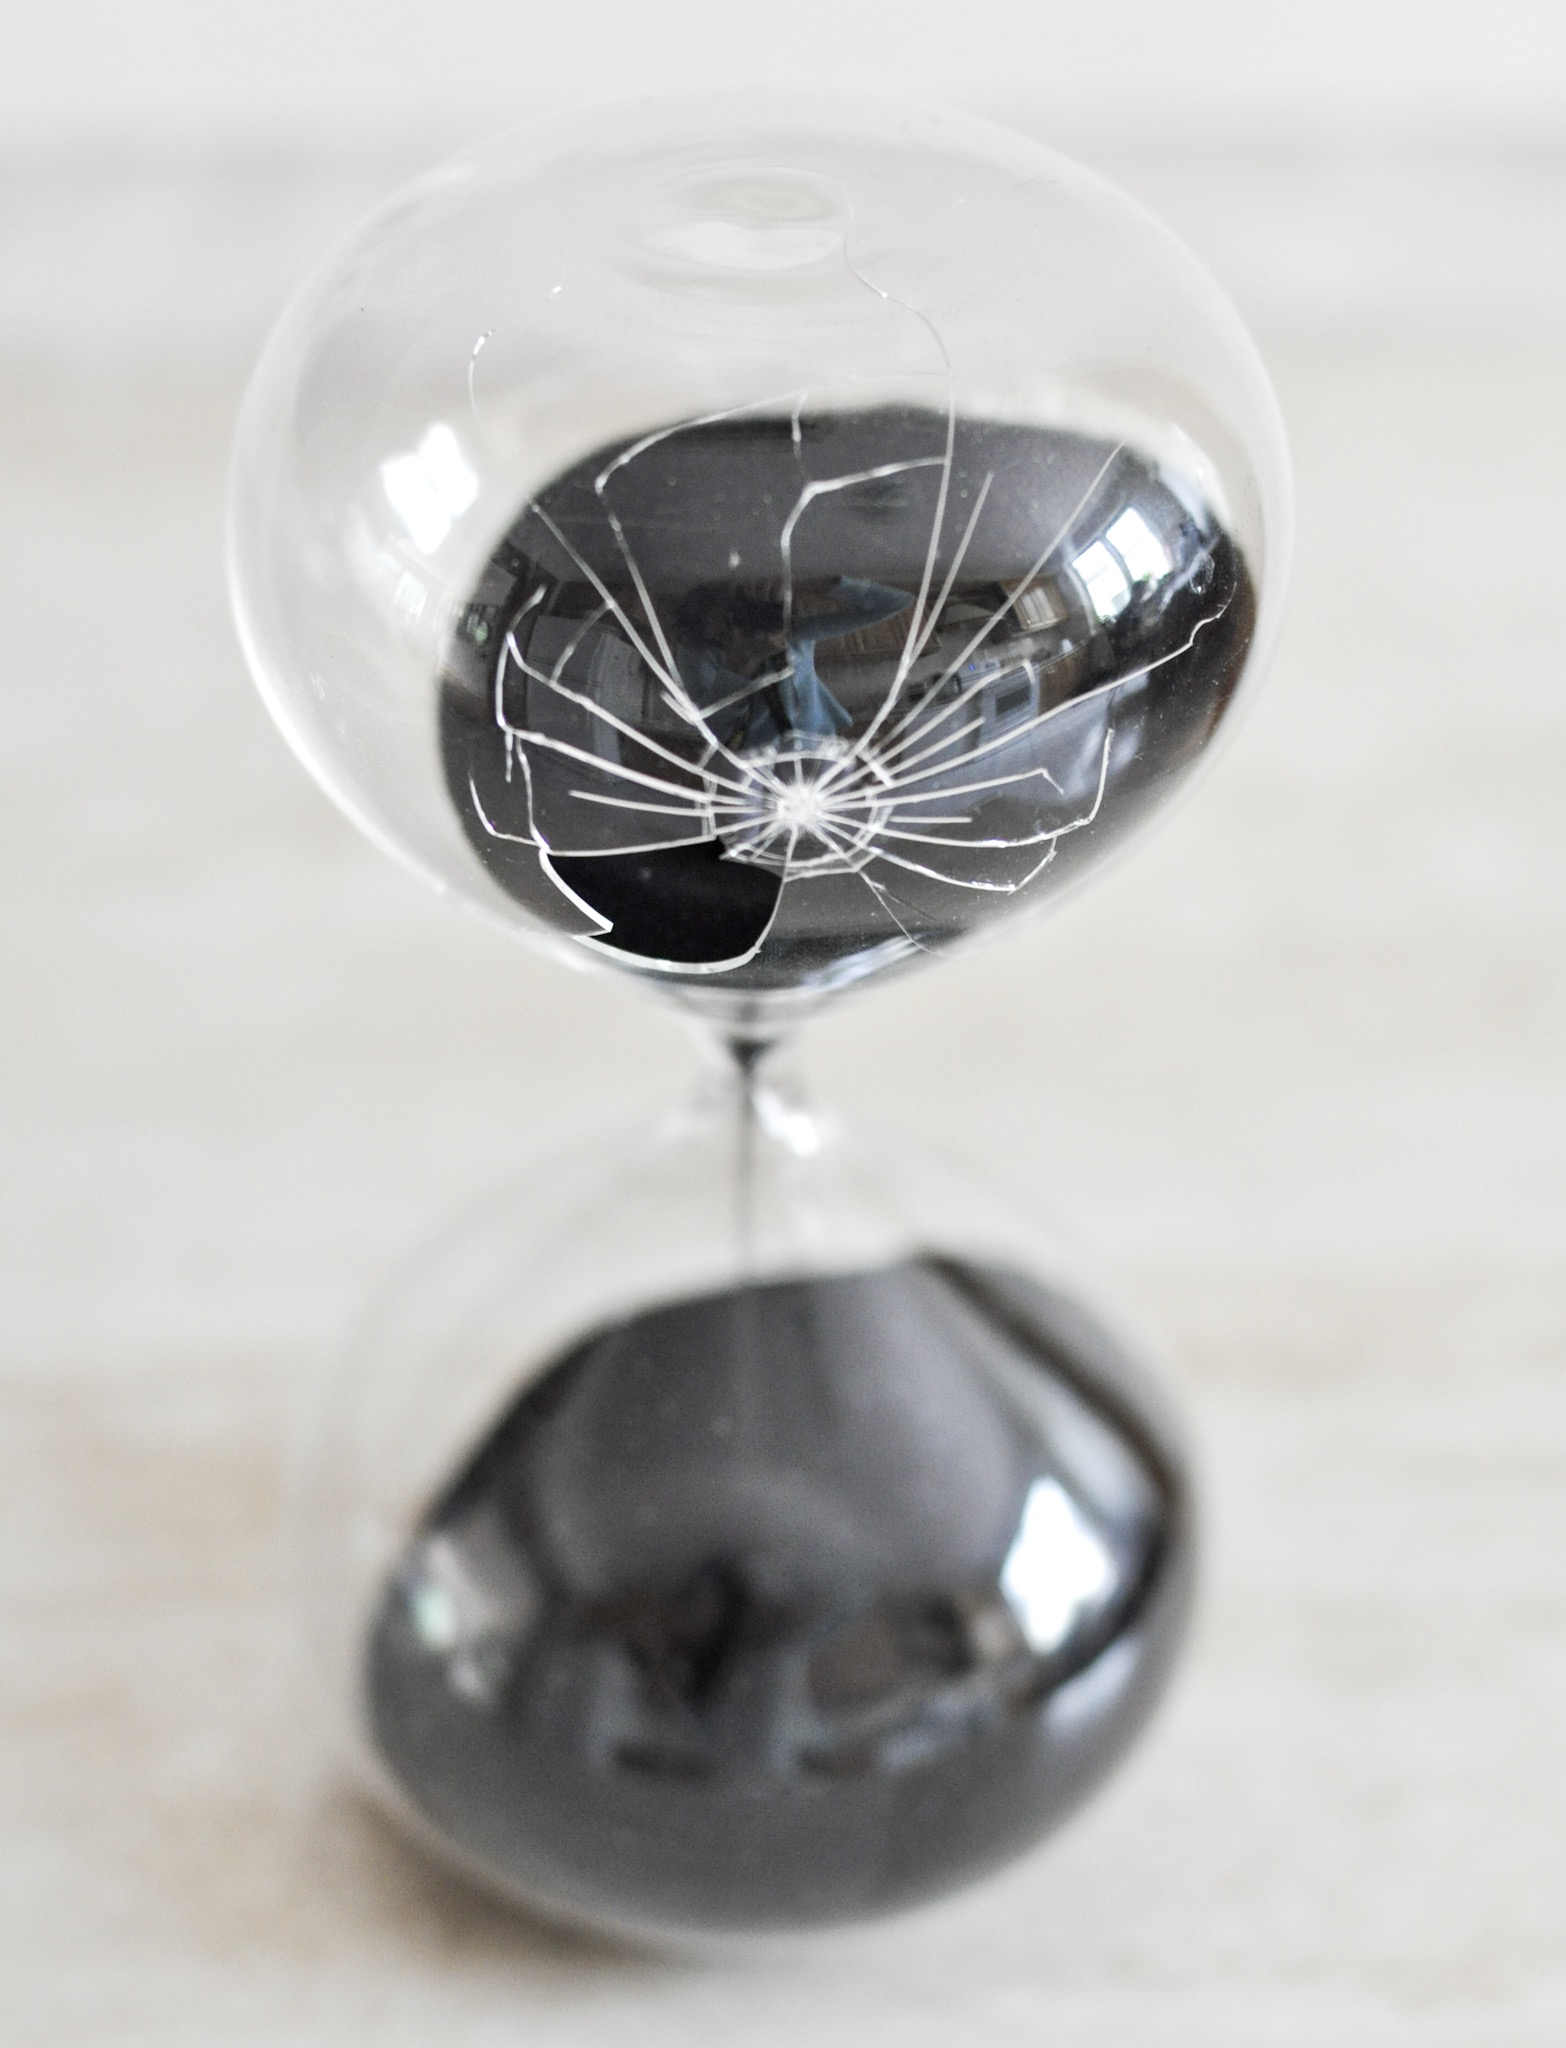 Glass sand timer with black sand and a shattered bulb